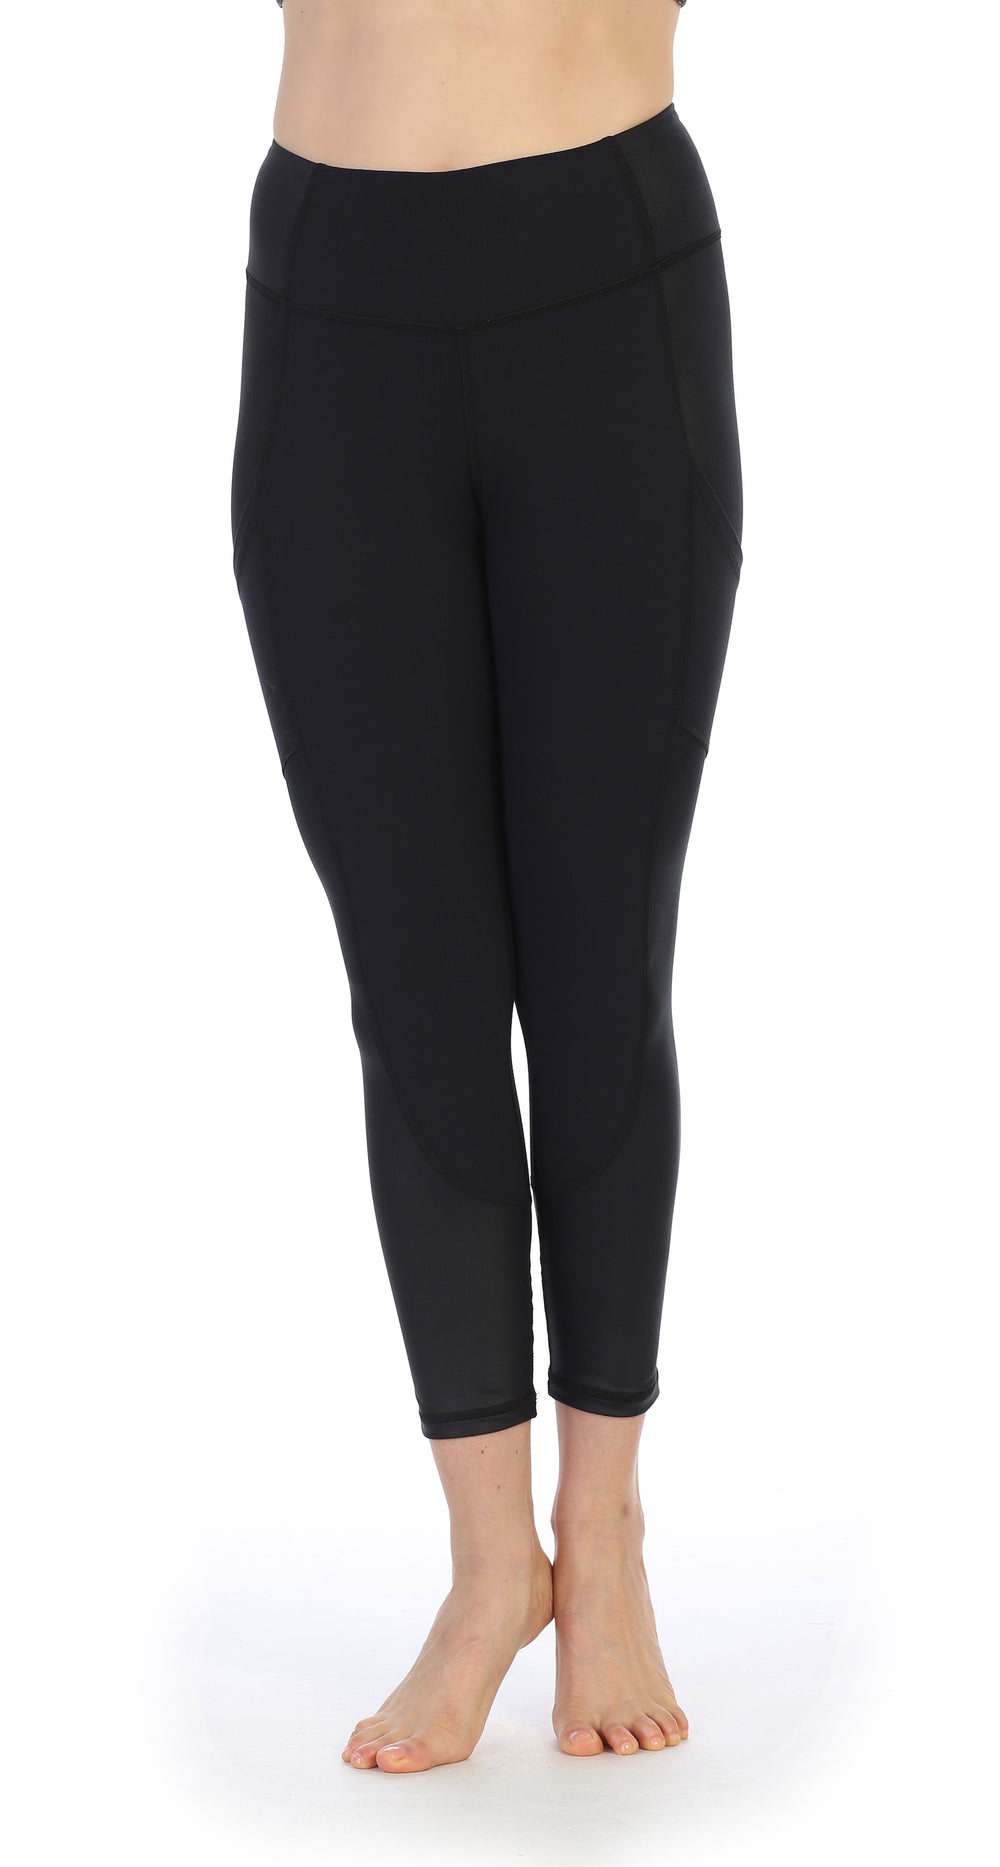 Black Ultra-Soft Color Block 7/8 Pocket Leggings-front image